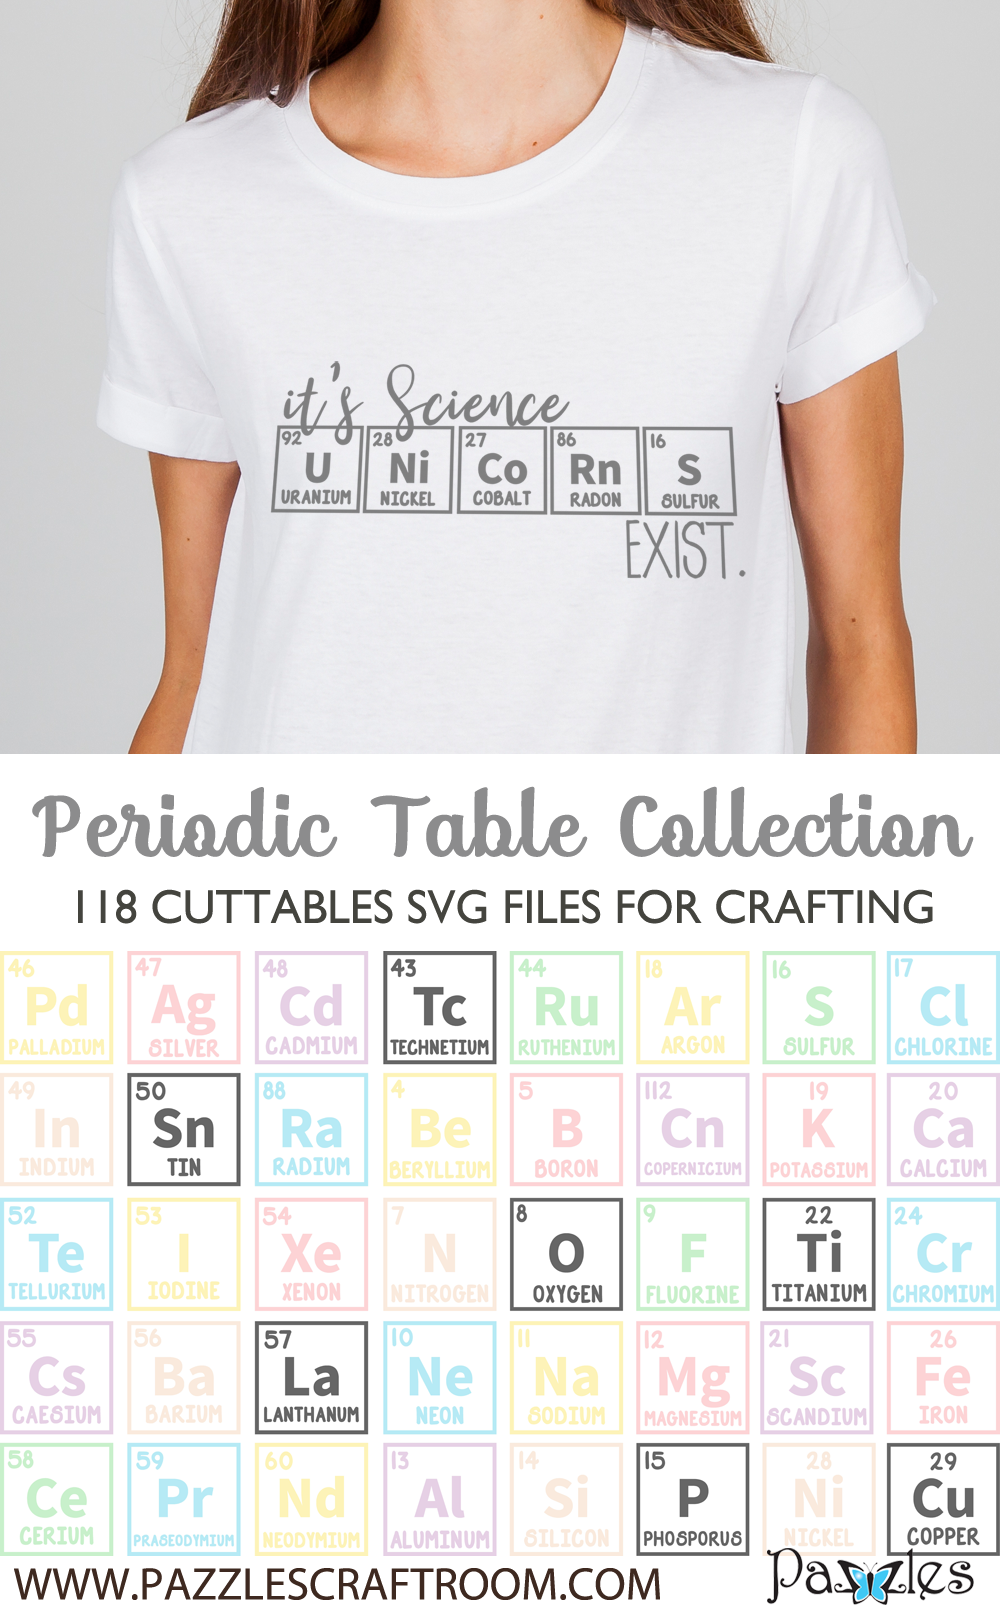 Pazzles DIY Periodic Table Collection of cuttable SVG files for crafts. Instant download compatible with all major electronic cutters including Pazzles Inspiration, Cricut, and Silhouette Cameo.